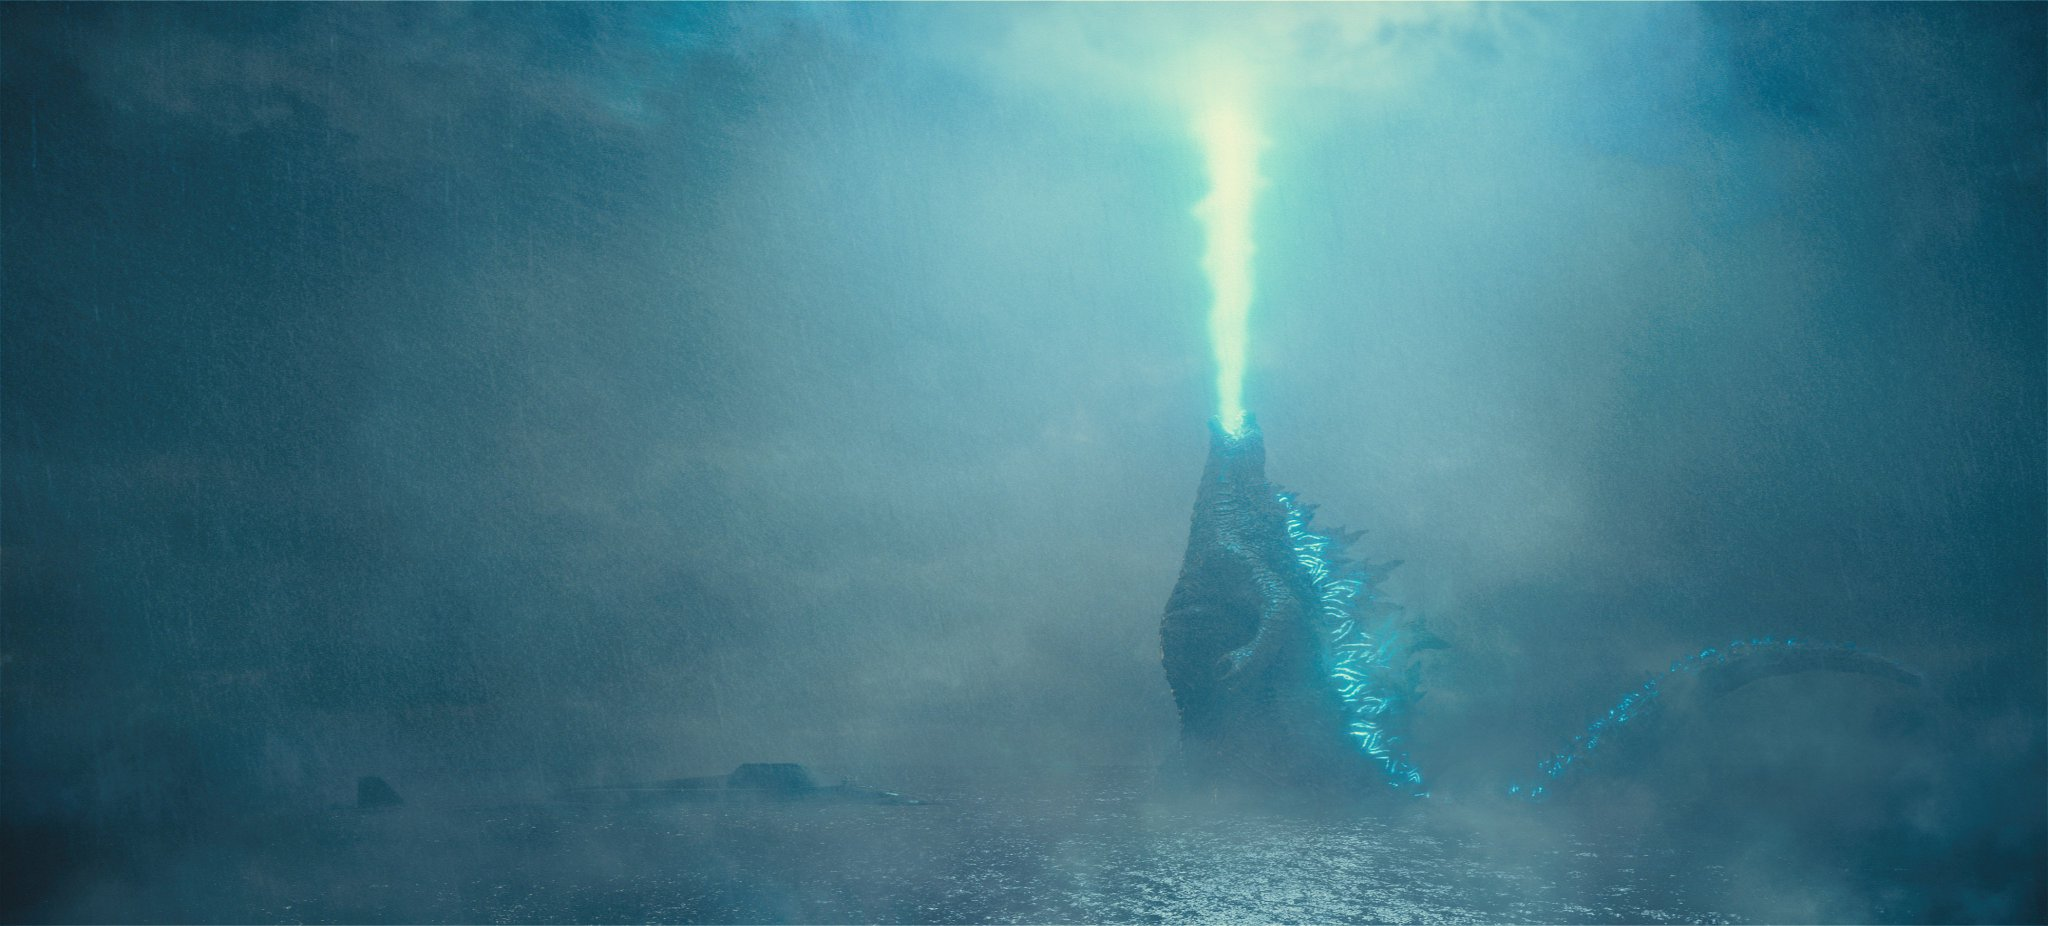 He is risen. https://t.co/yFsrtqmsP2 @GodzillaMovie https://t.co/2uSJva0nsB